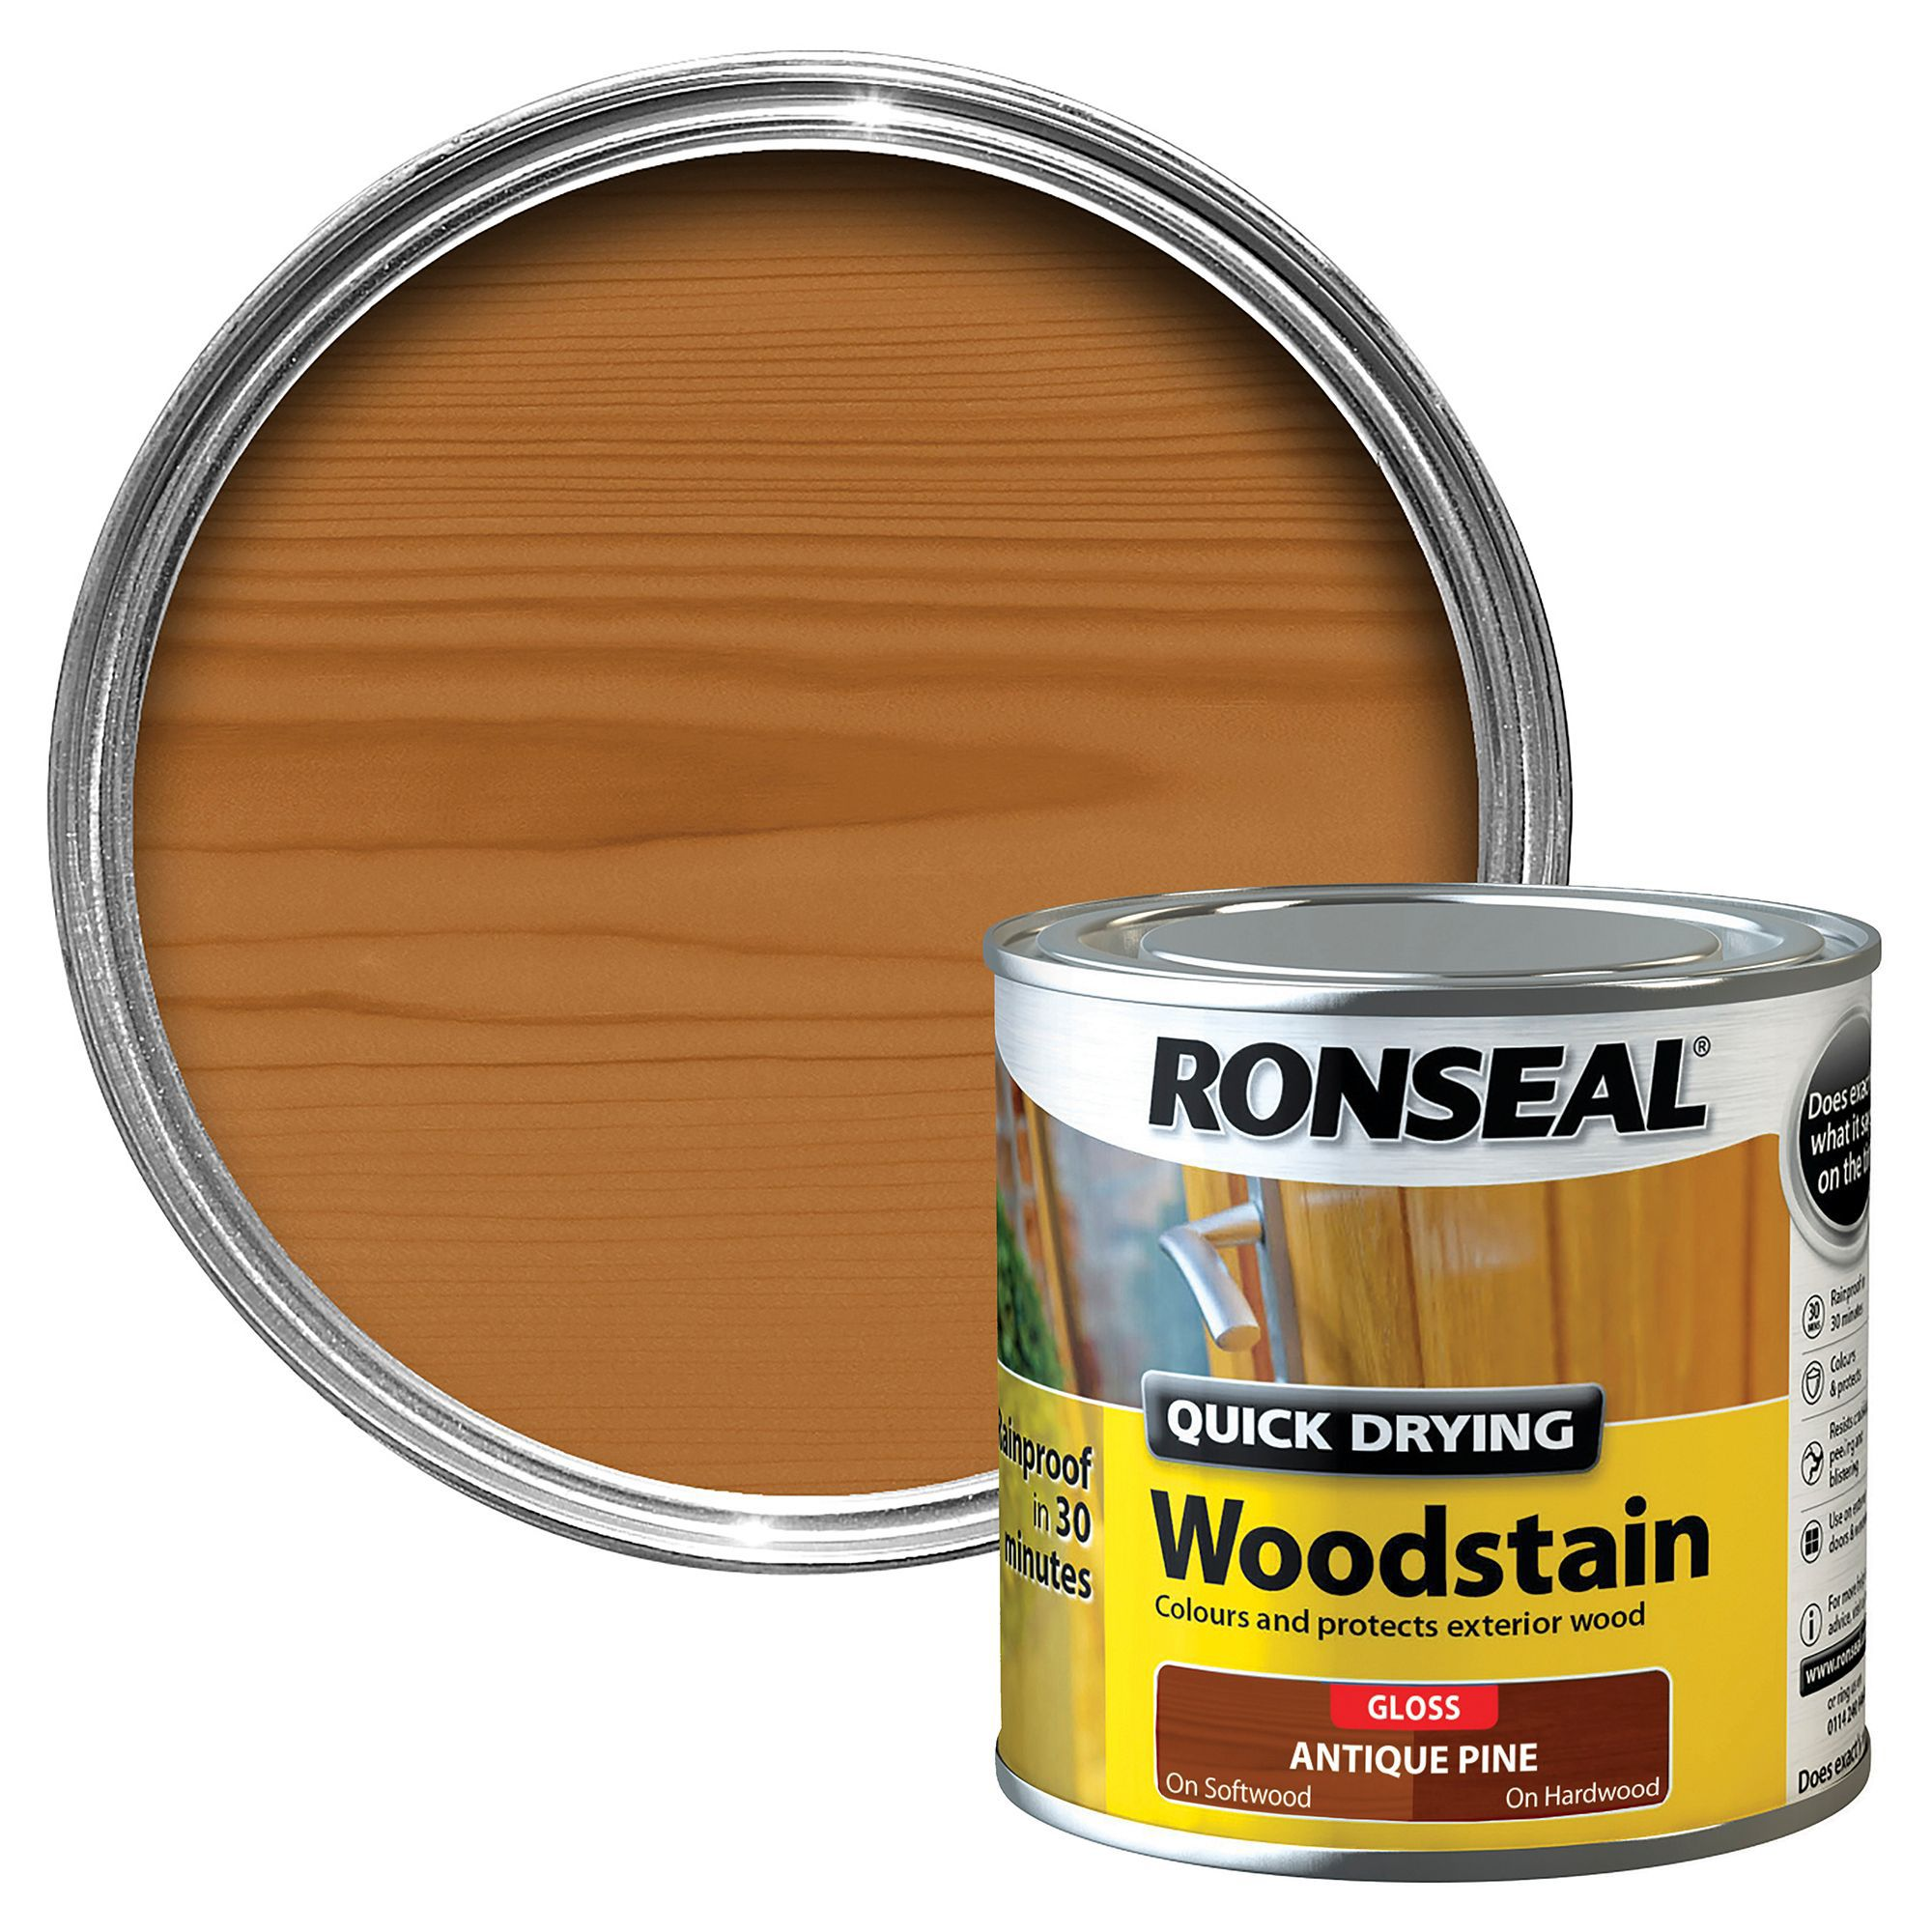 Ronseal Antique Pine Gloss Wood Stain 250ml Departments